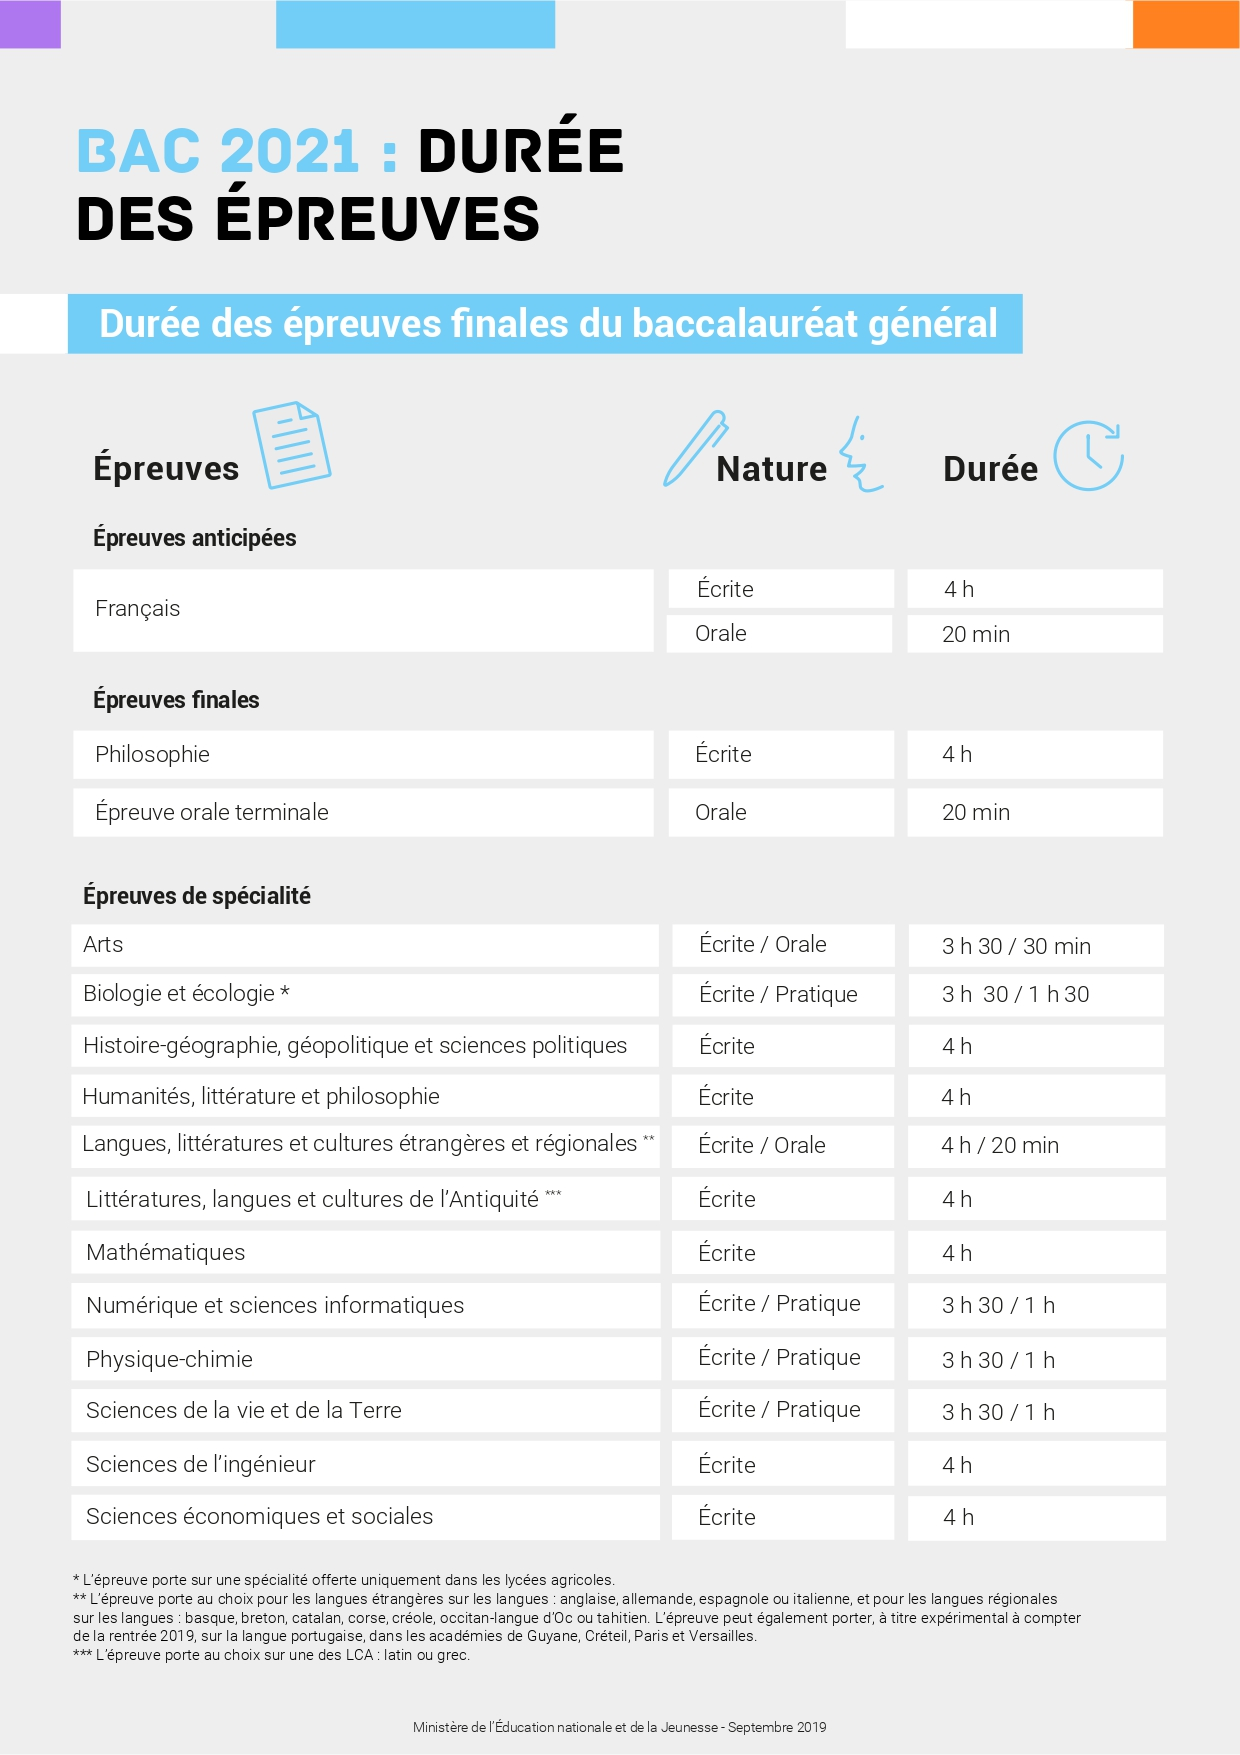 Epreuves calendrier duree BAC 2021 1 page 0002